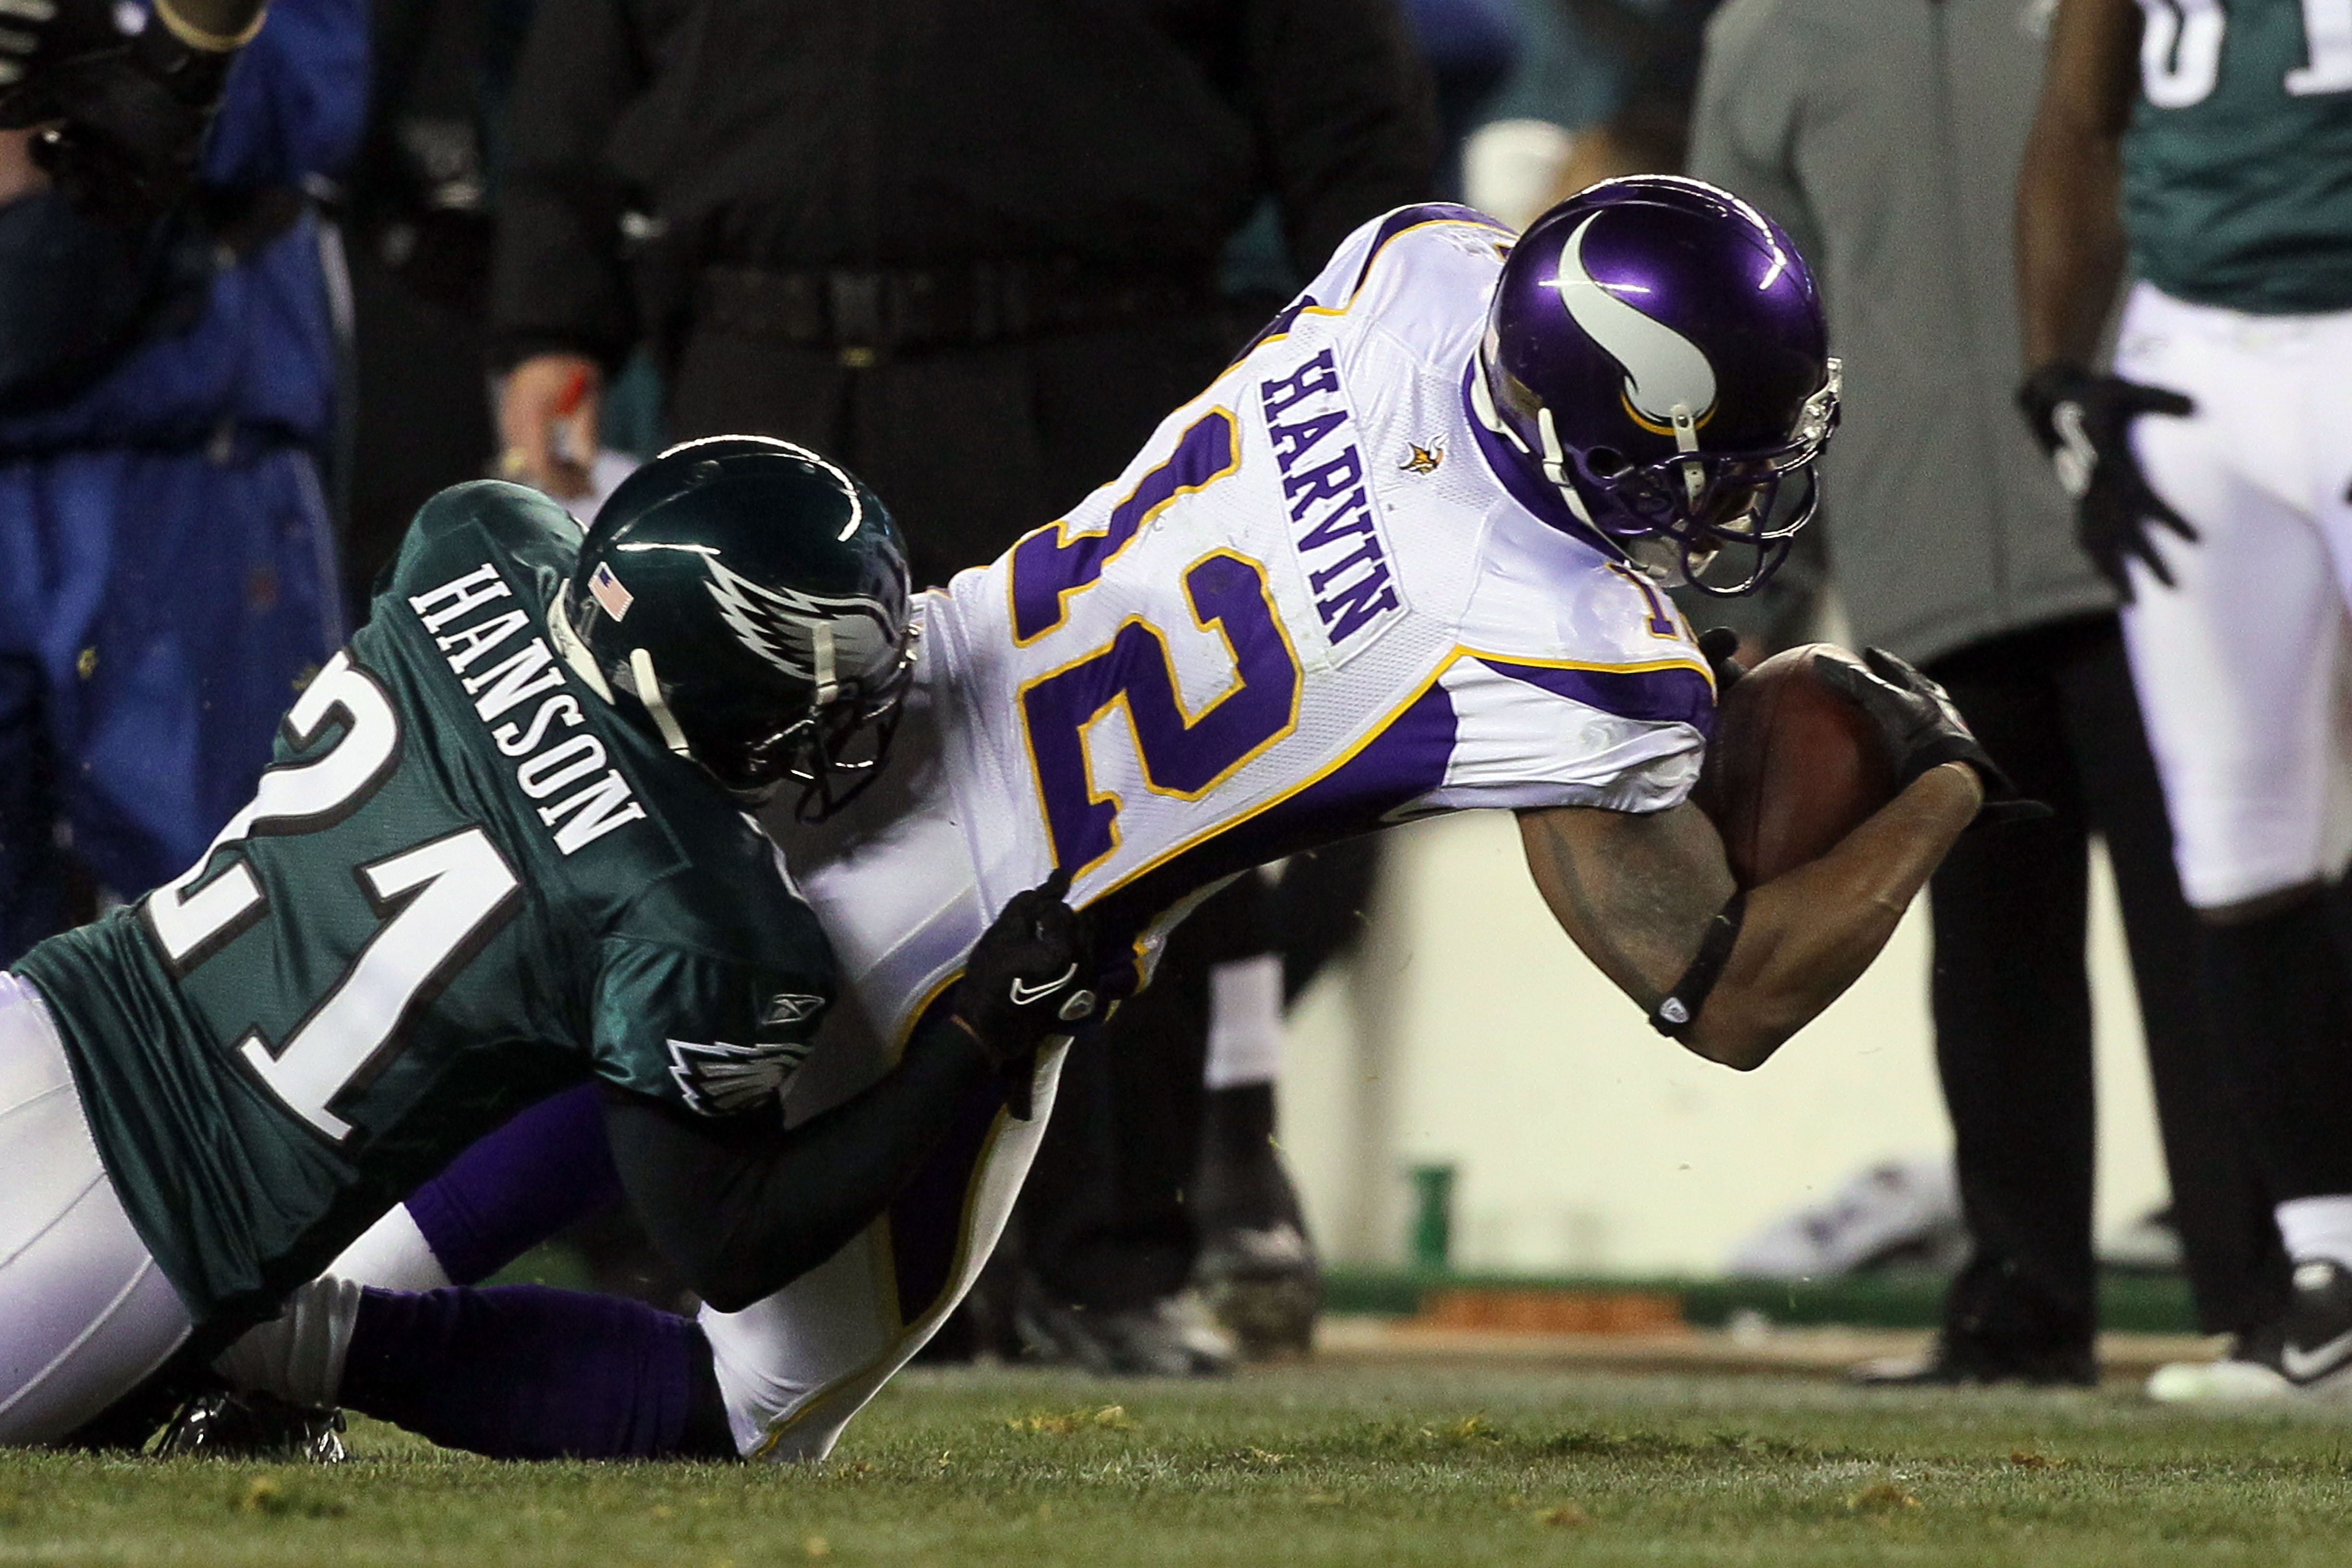 PHILADELPHIA, PA - DECEMBER 28:  Percy Harvin #12 of the Minnesota Vikings in action against Joselio Hanson #21 of the Philadelphia Eagles at Lincoln Financial Field on December 28, 2010 in Philadelphia, Pennsylvania.  (Photo by Jim McIsaac/Getty Images)